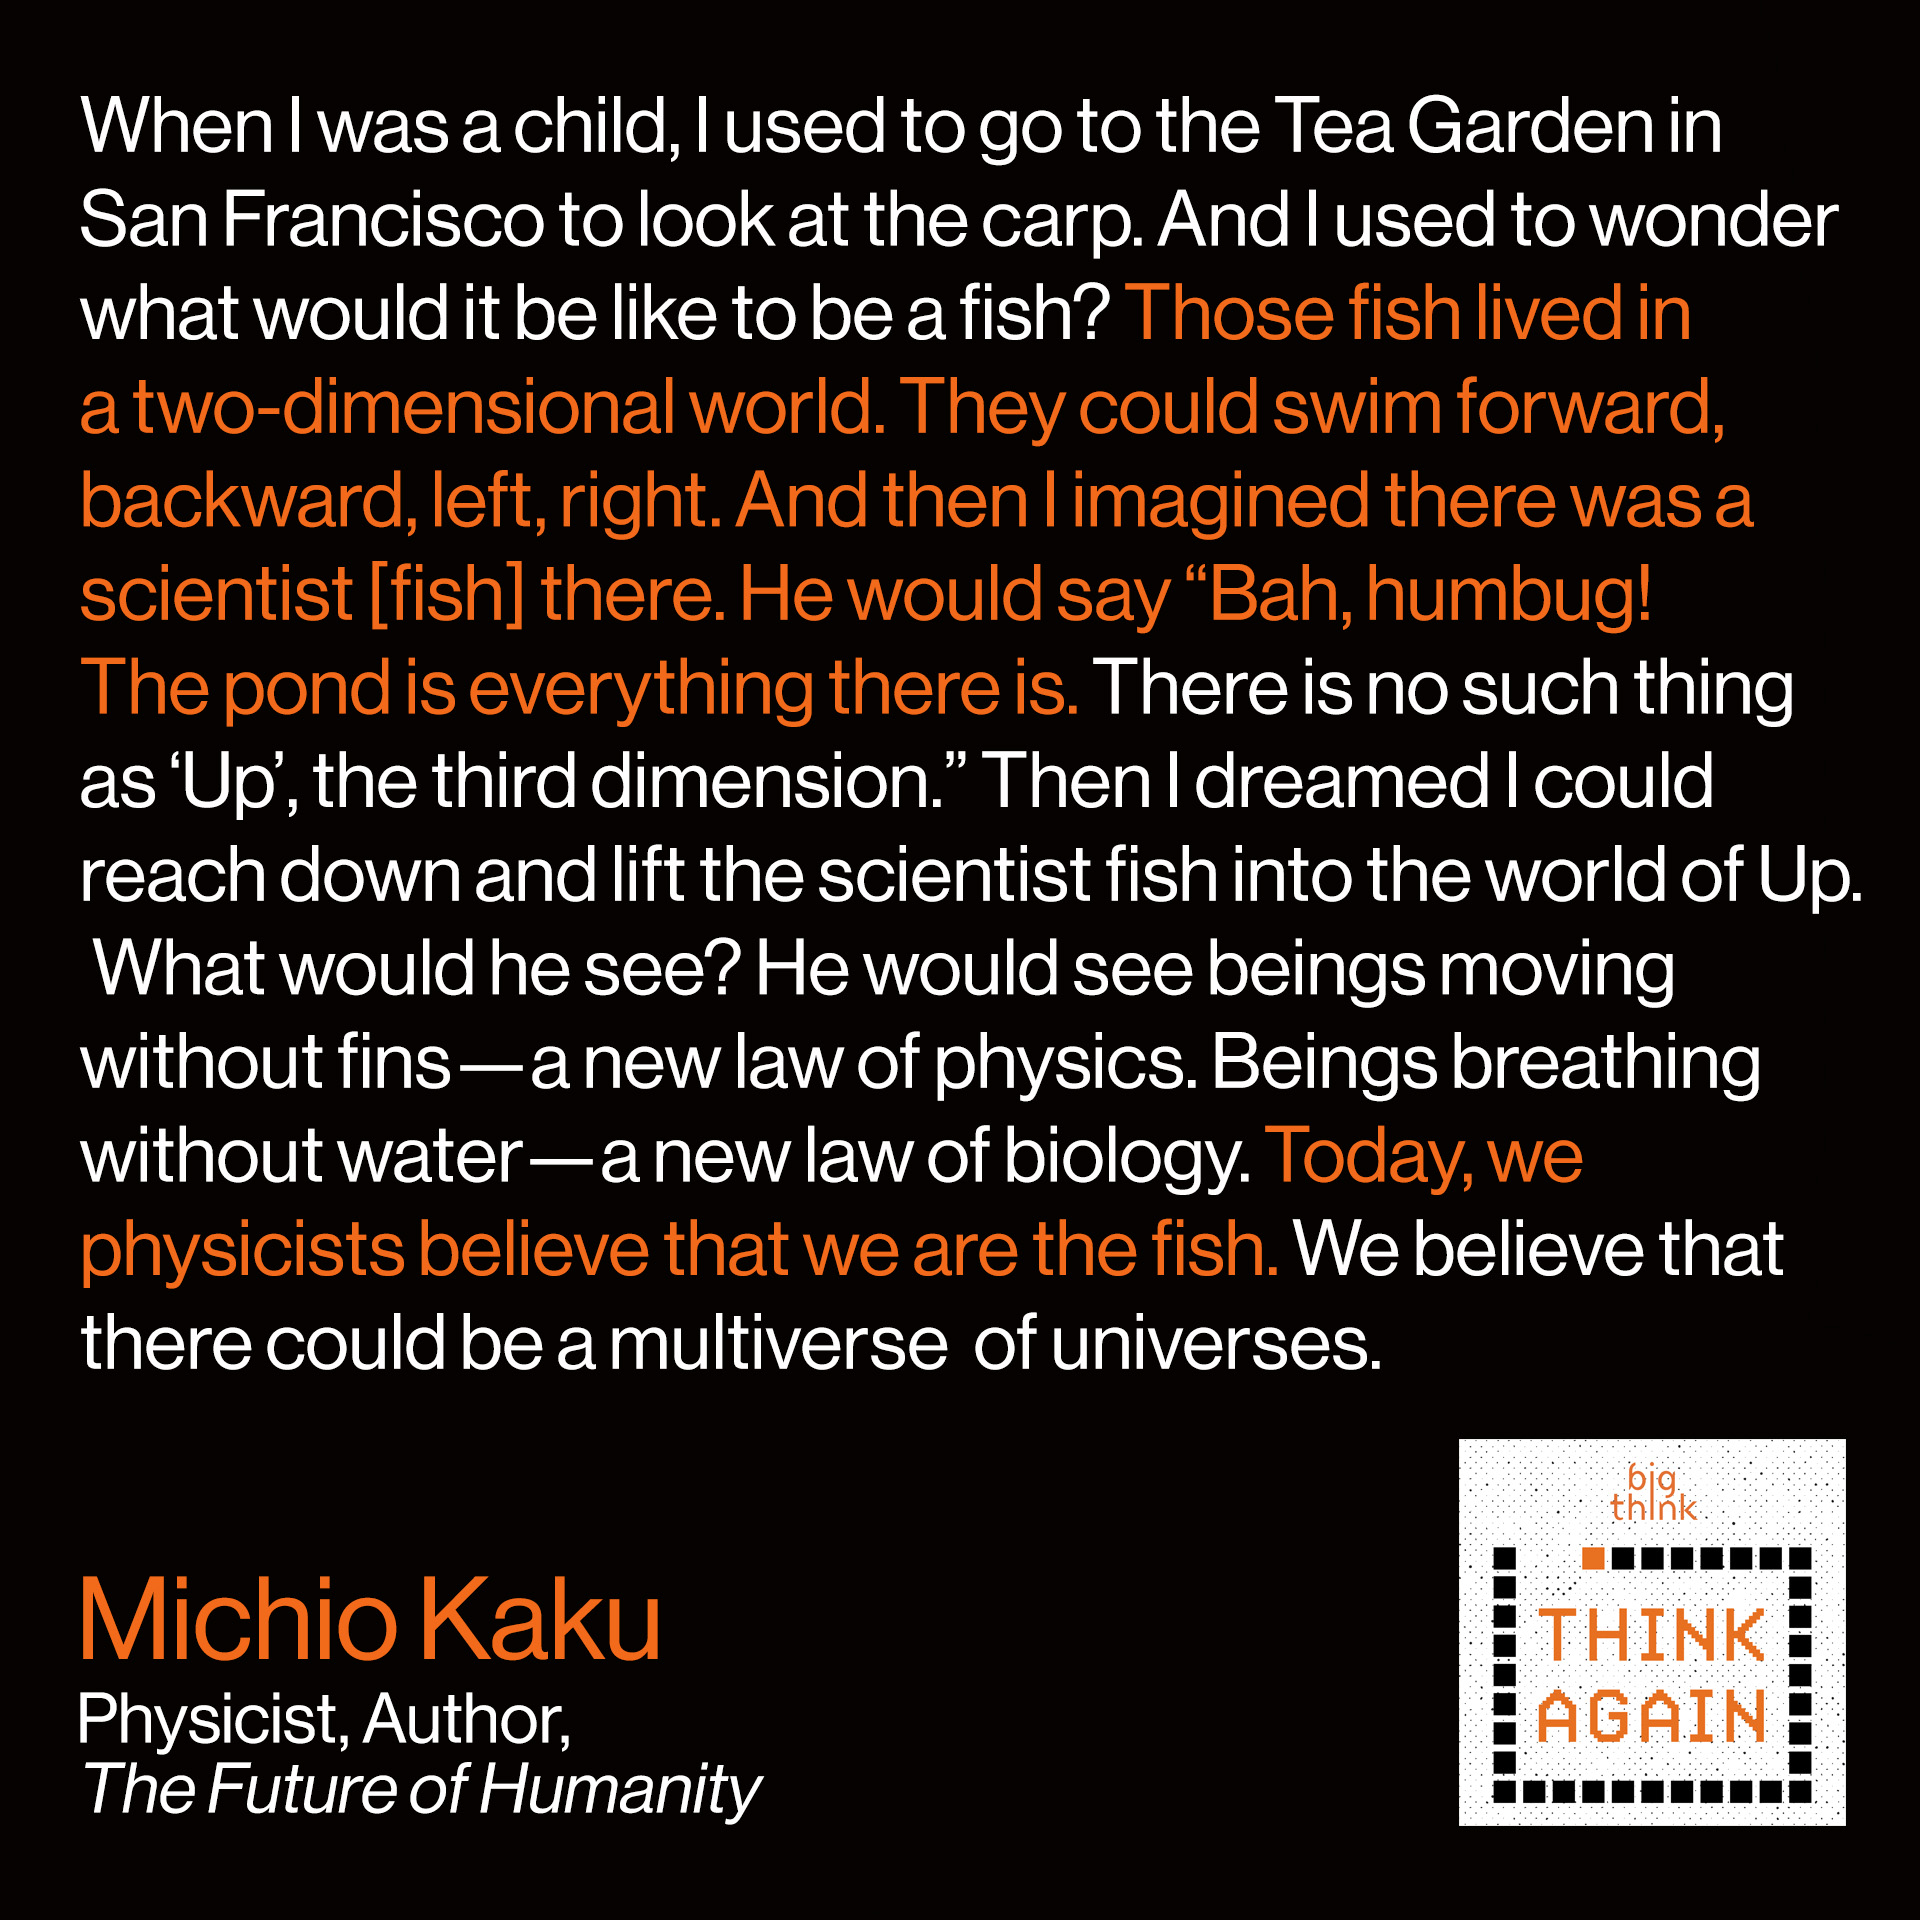 "Michio Kaku quote: When I was a child, I used to go to the Tea Garden in San Francisco to look at the carp.  And I used to wonder what would it be like to be a fish?  Well, those fish lived in a two-dimensional world. They could swim forward, backward, left, right.  And then I imagined there was a scientist [fish] there. He would say ""Bah, humbug!  The pond is everything there is. There is no such thing as 'Up', the third dimension.""  Then I dreamed I could reach down and lift the scientist fish into the world of Up.   What would he see? He would see beings moving without fins—a new law  of physics. Beings breathing without water—a new law of biology.  Today, we physicists believe that we are the fish. We believe that there could be a multiverse  of universes. And each universe is a bubble. And so the new paradigm is a bubble bath.  Each bubble is three dimensional, and it's expanding into hyperspace."